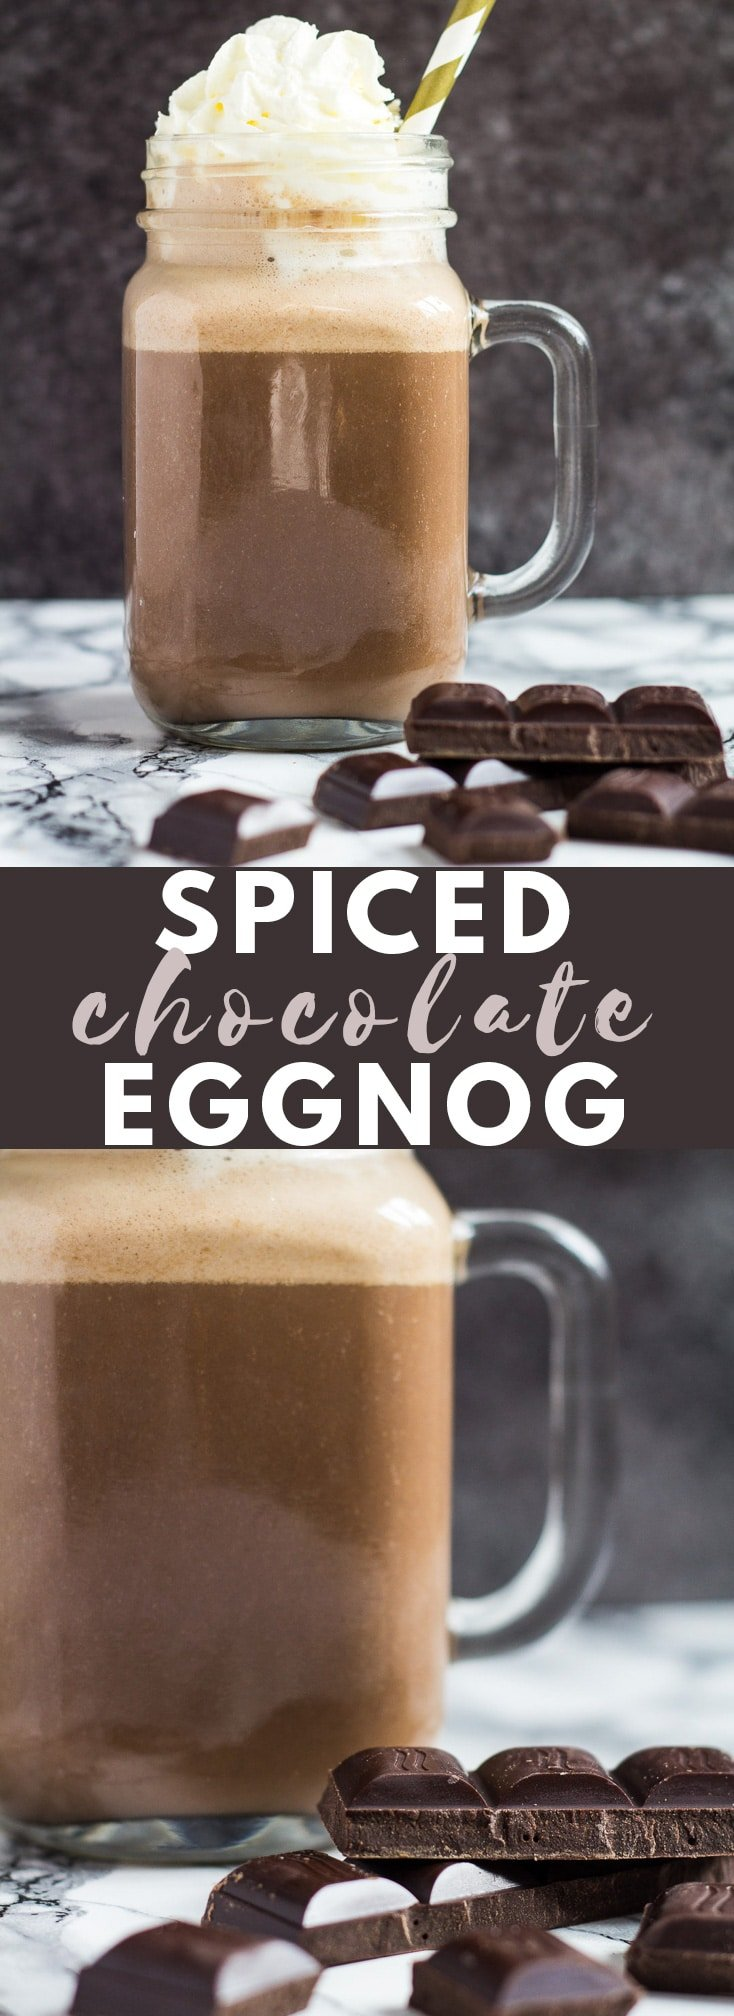 Spiced Chocolate Eggnog